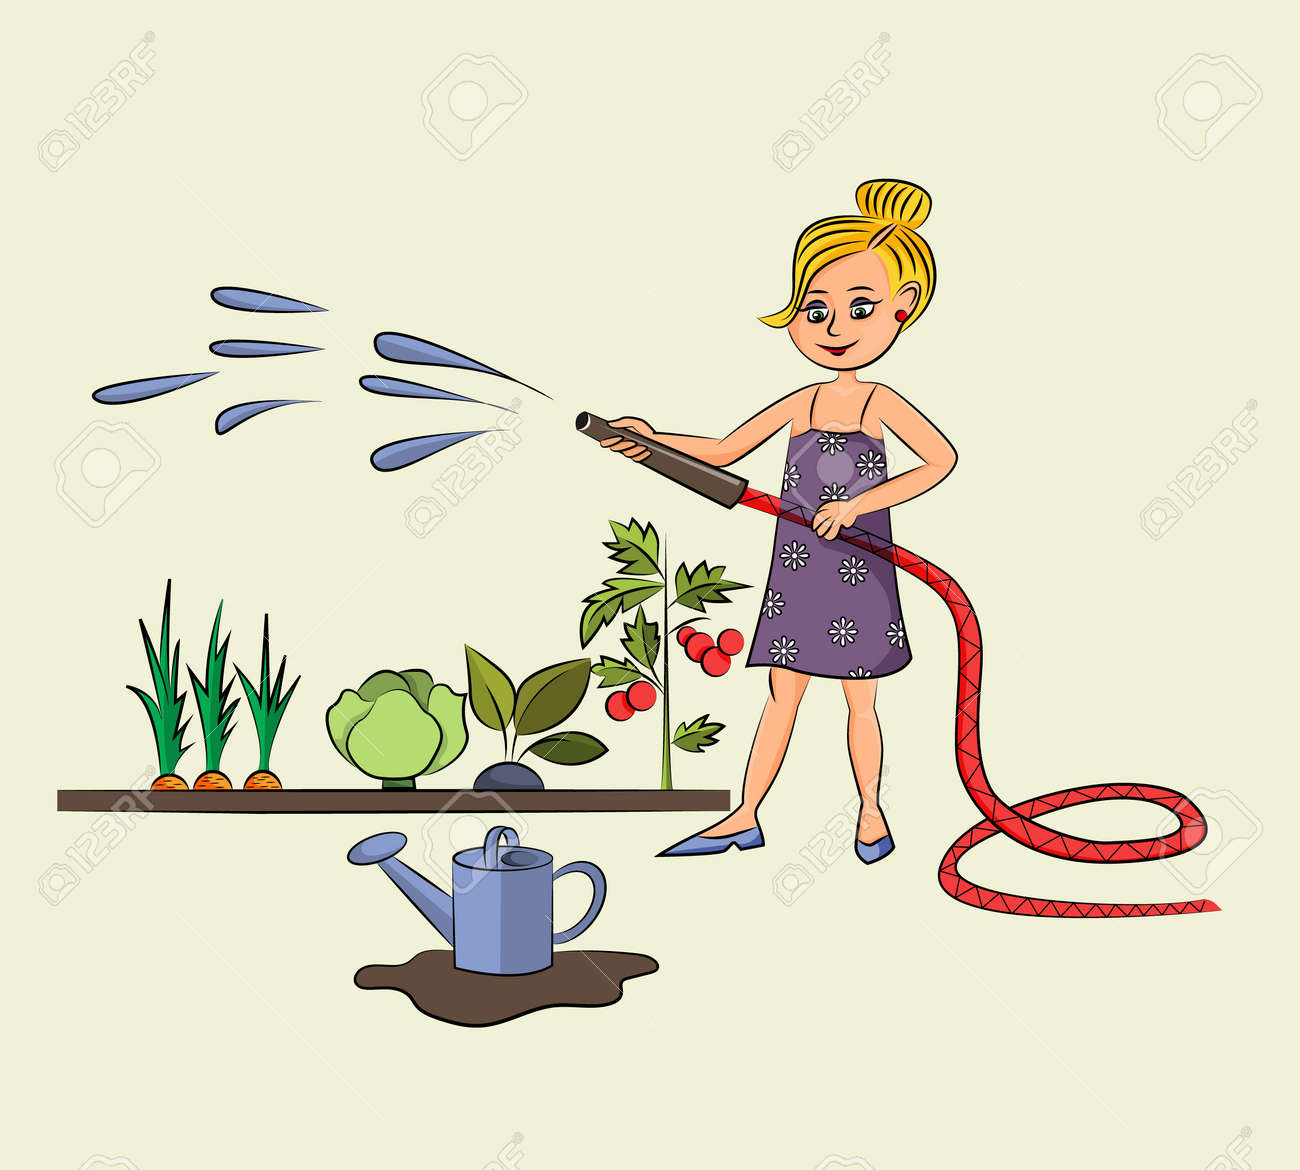 Cheerful hardworking girl works in the garden and hose down vegetables. - 168765939